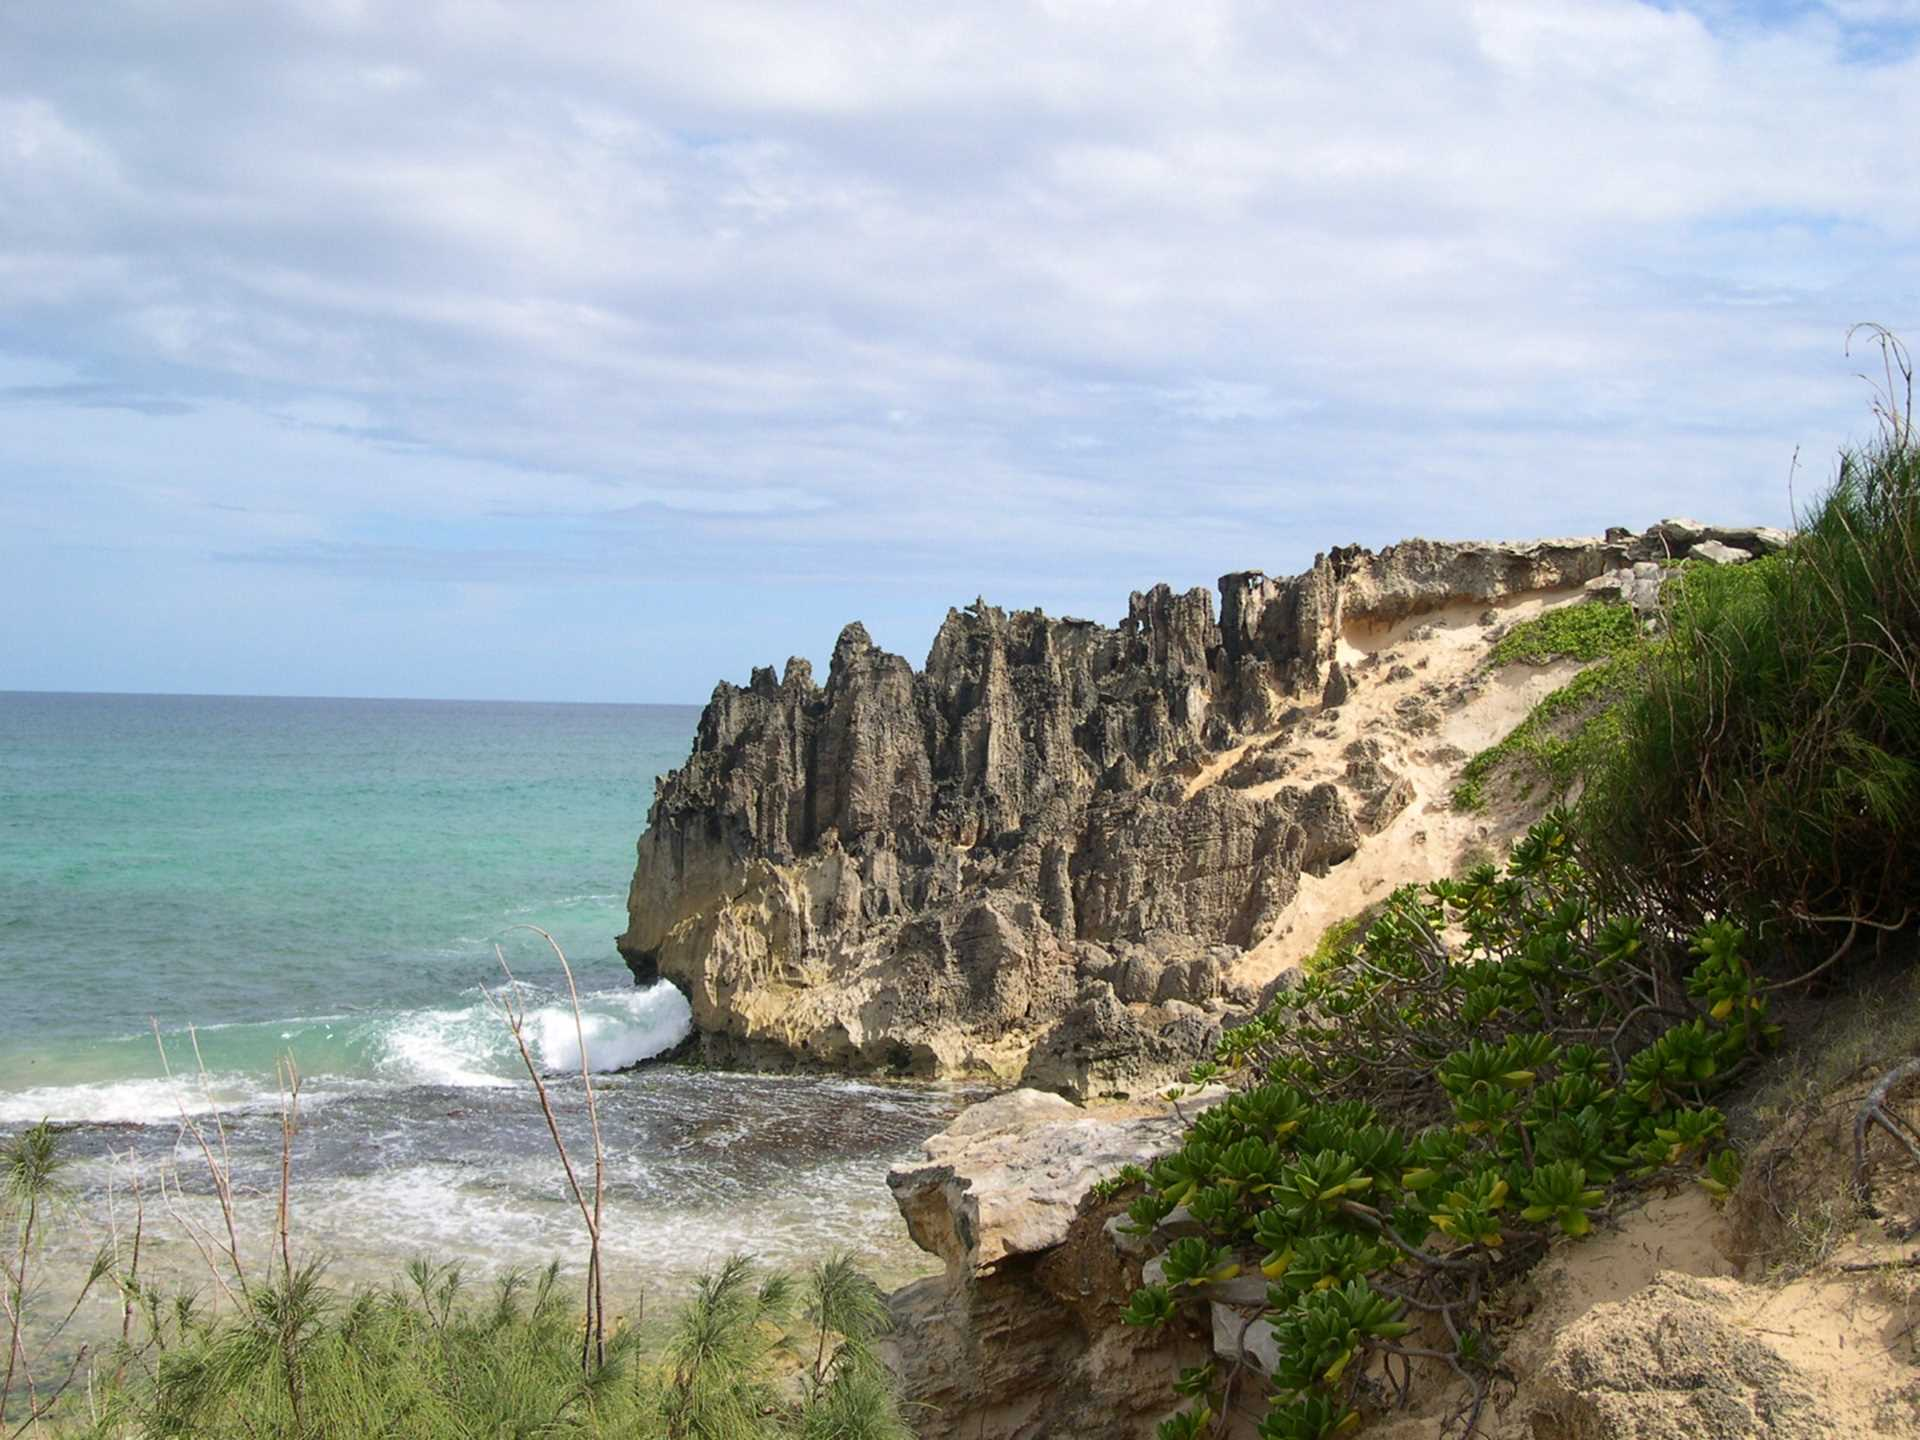 Lithified cliffs near Maha'ulepu